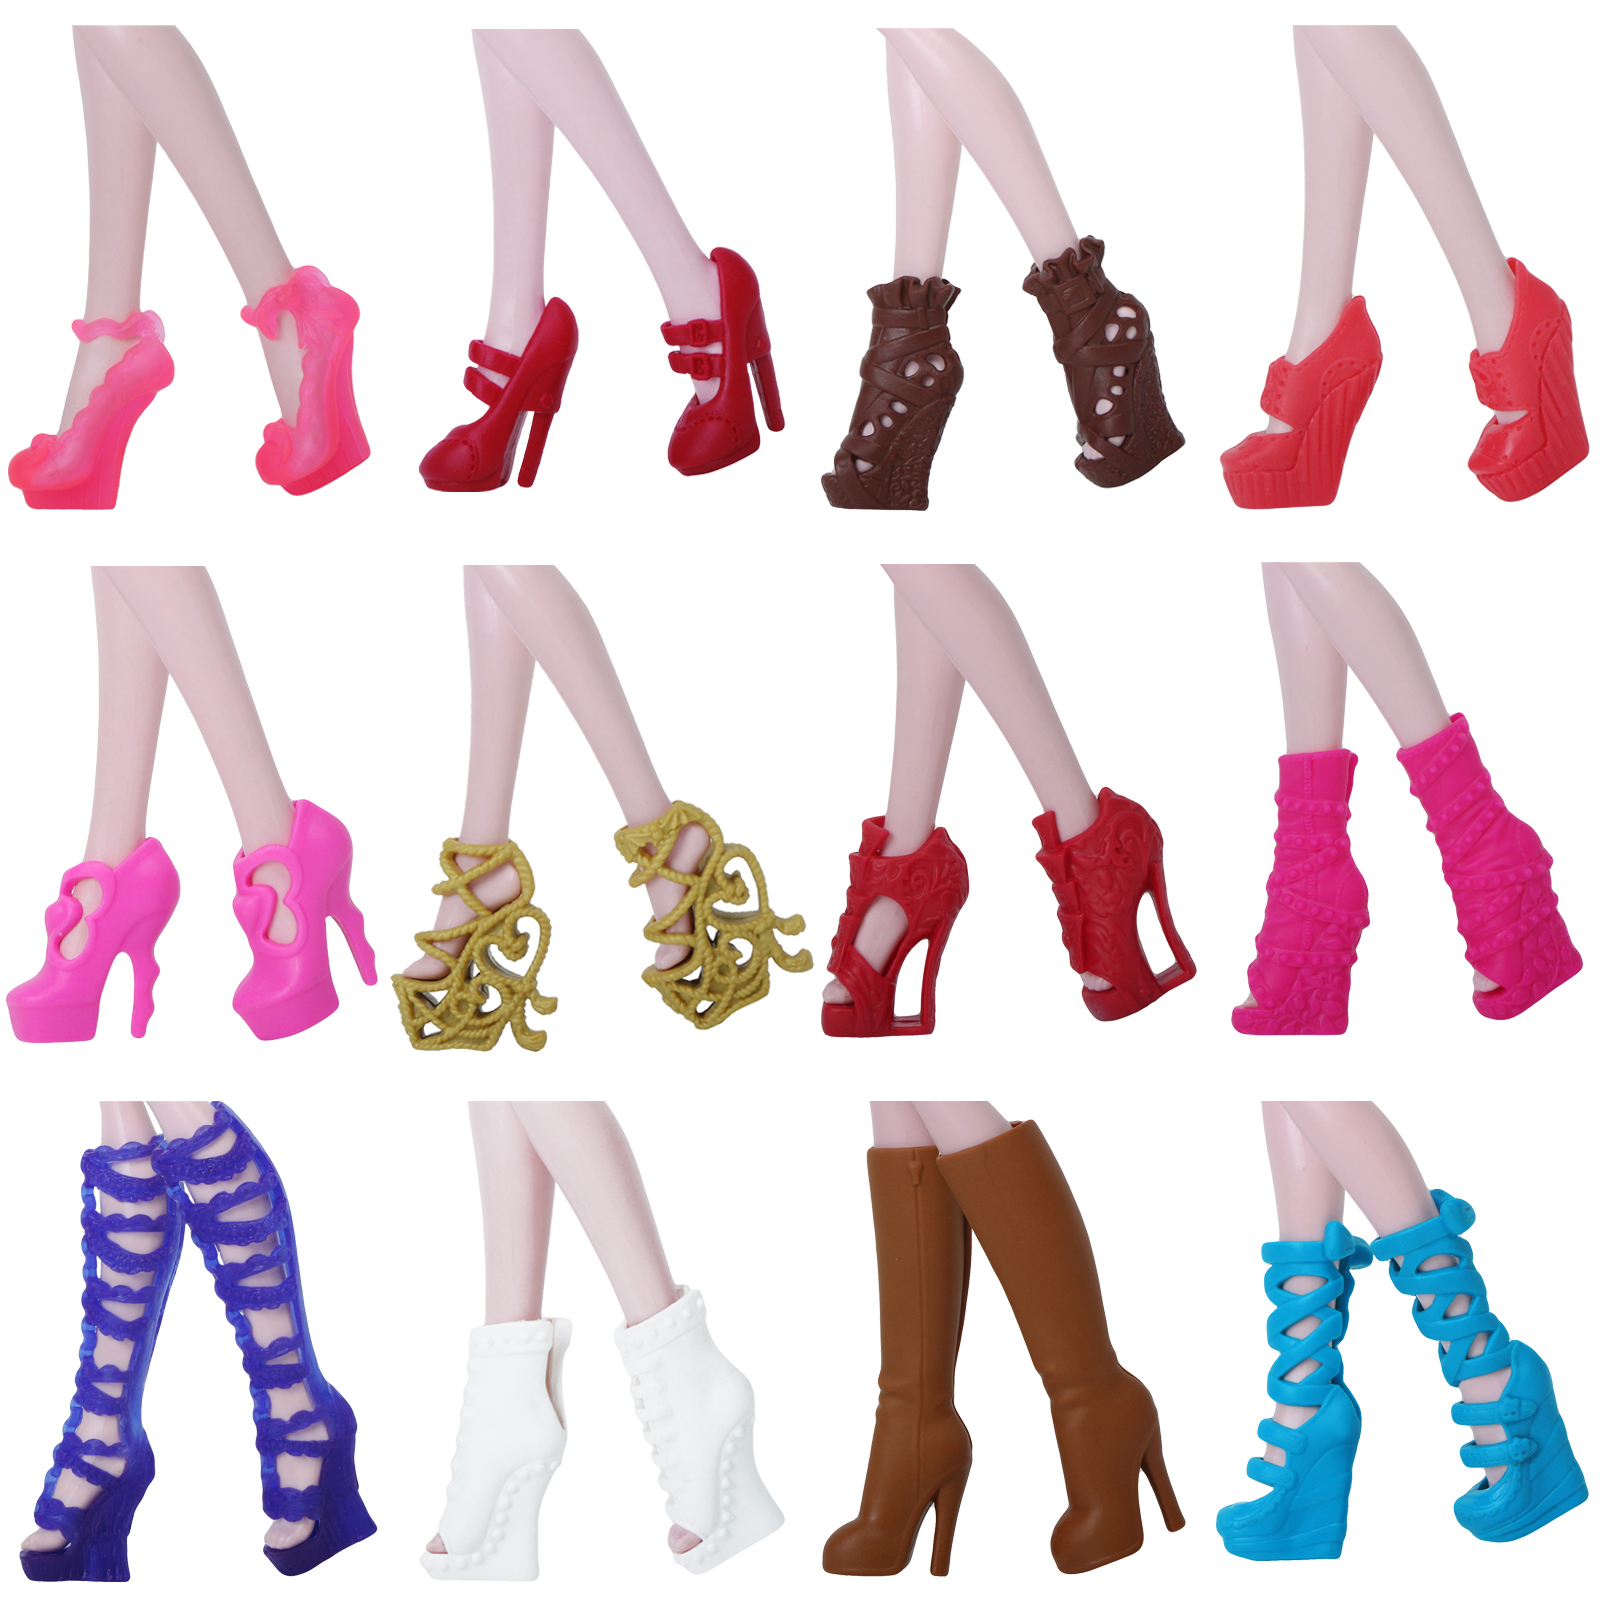 High Quality Shoes Fashion Mixed Style High Heel Boots Colorful Sandals Accessories For Monster High Doll 10